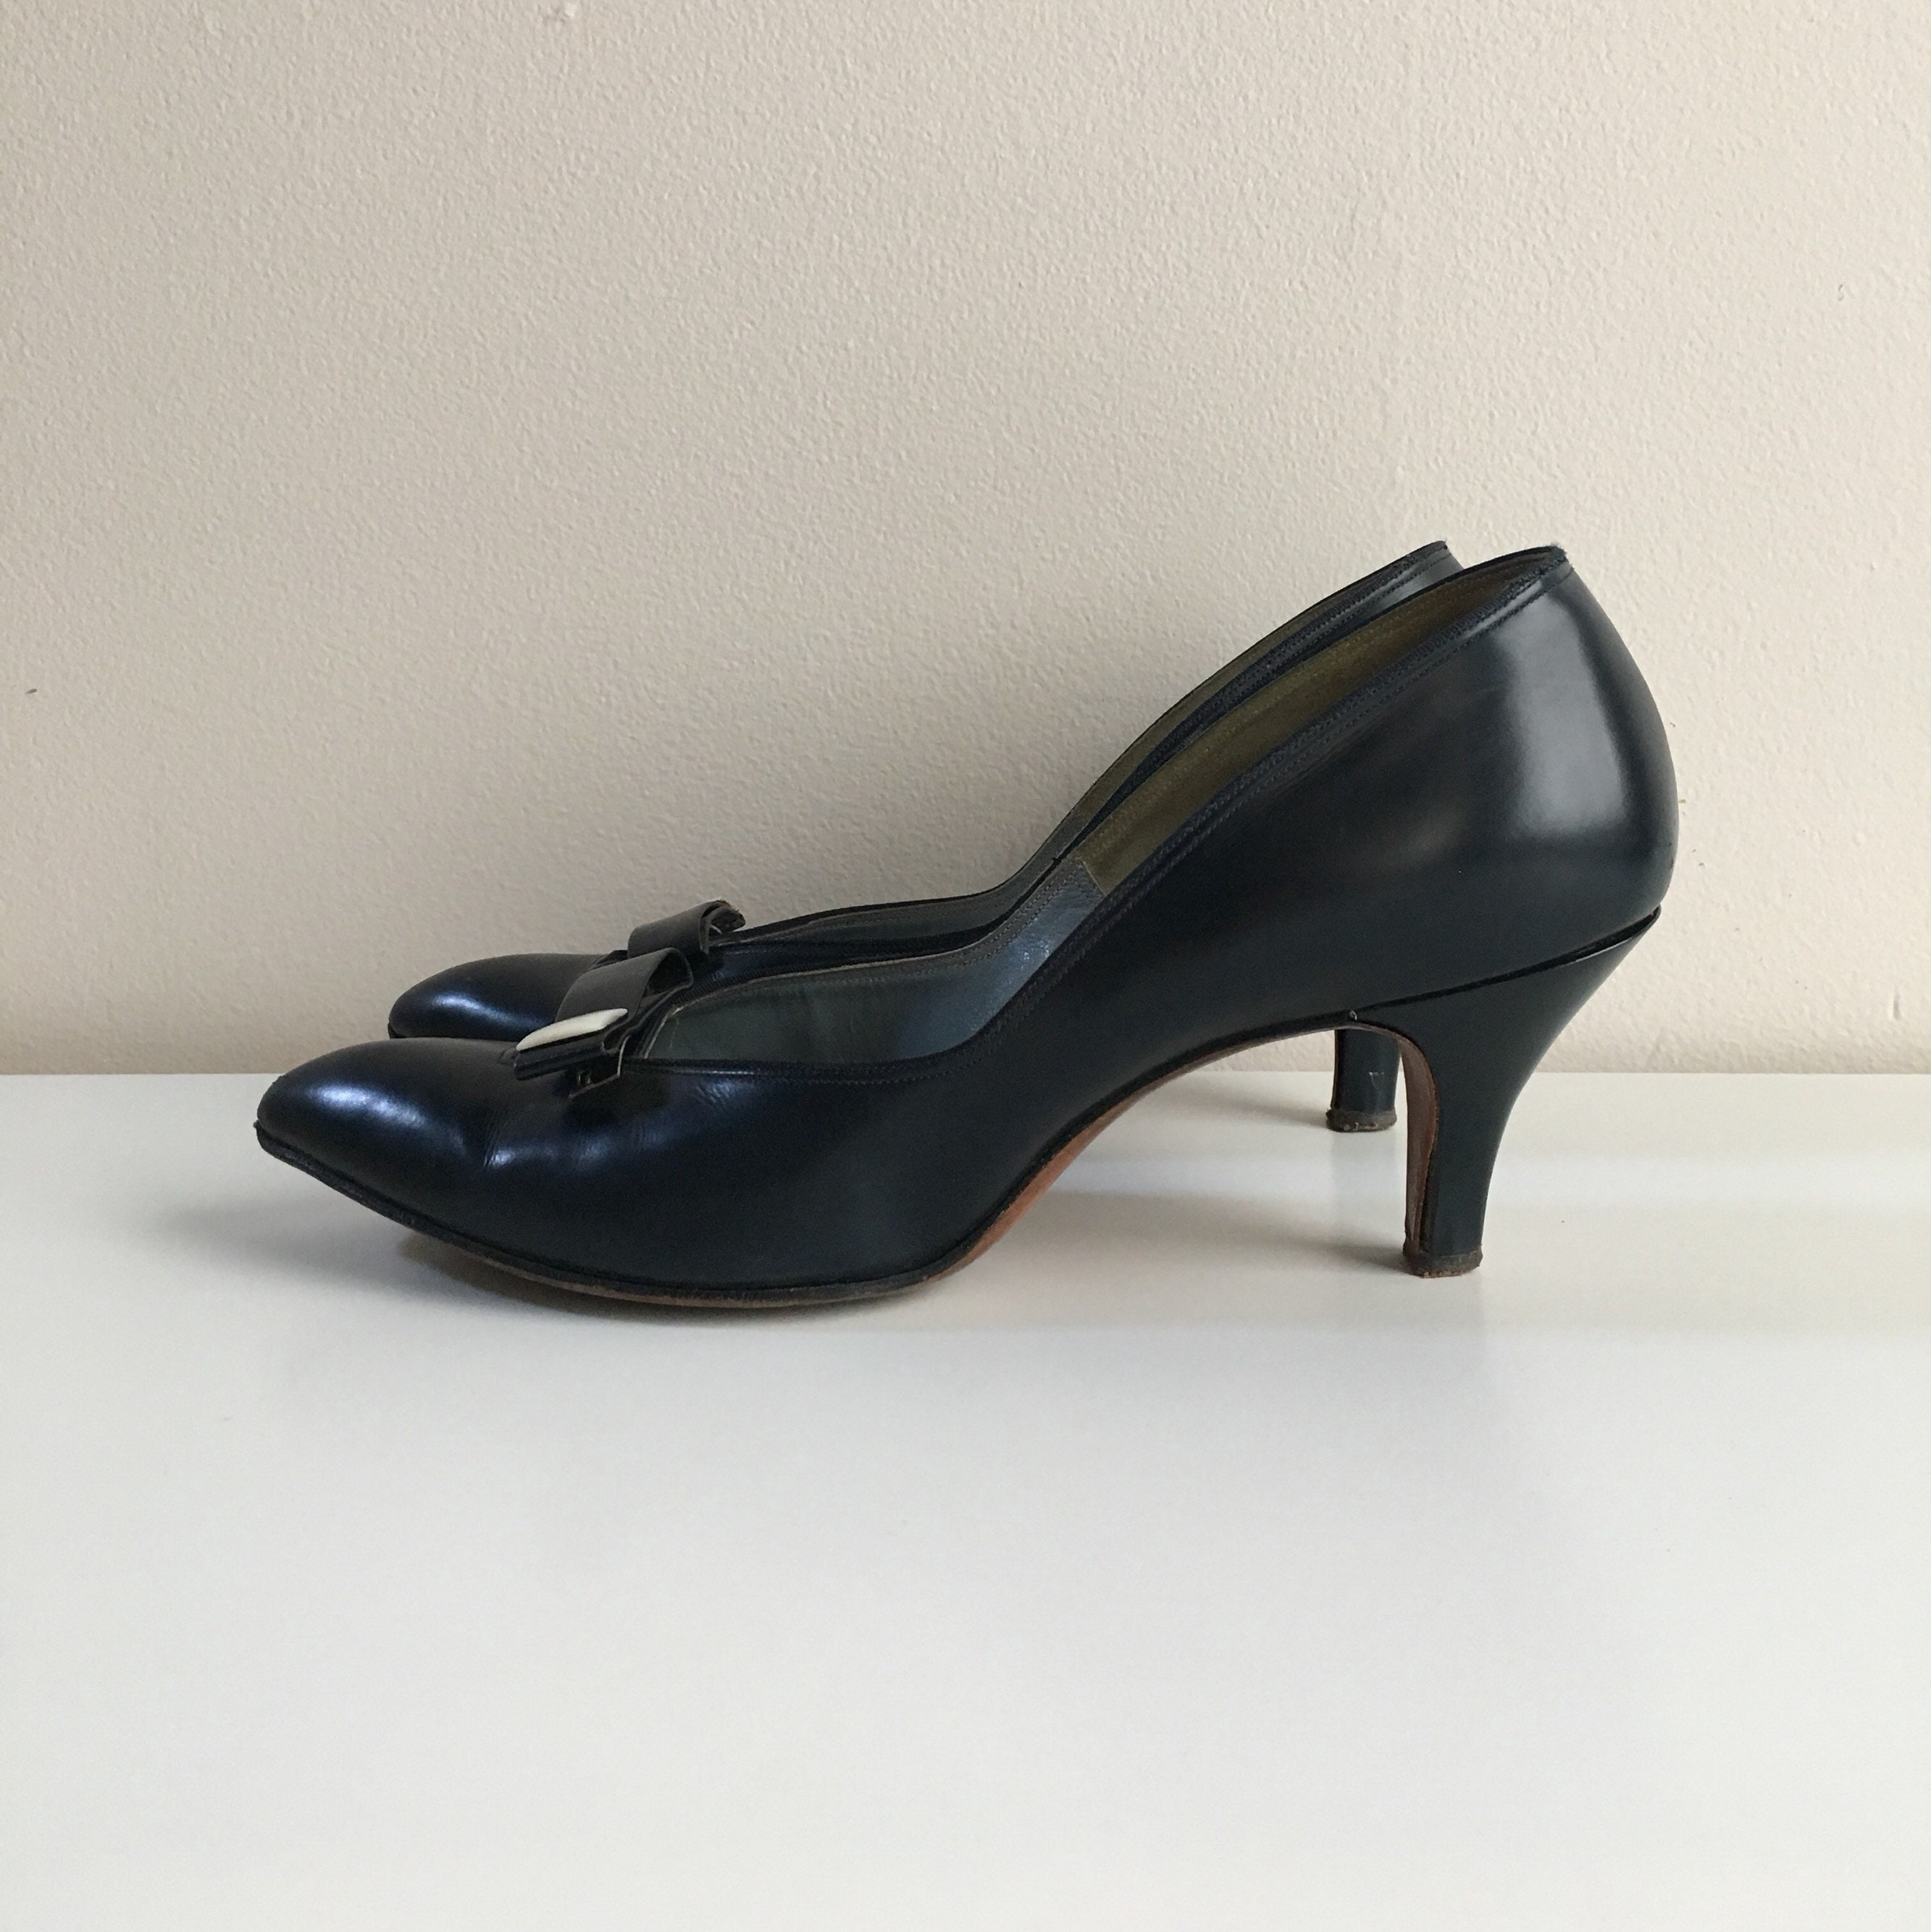 1950s - women's navy blue leather pointy toe heels / pumps